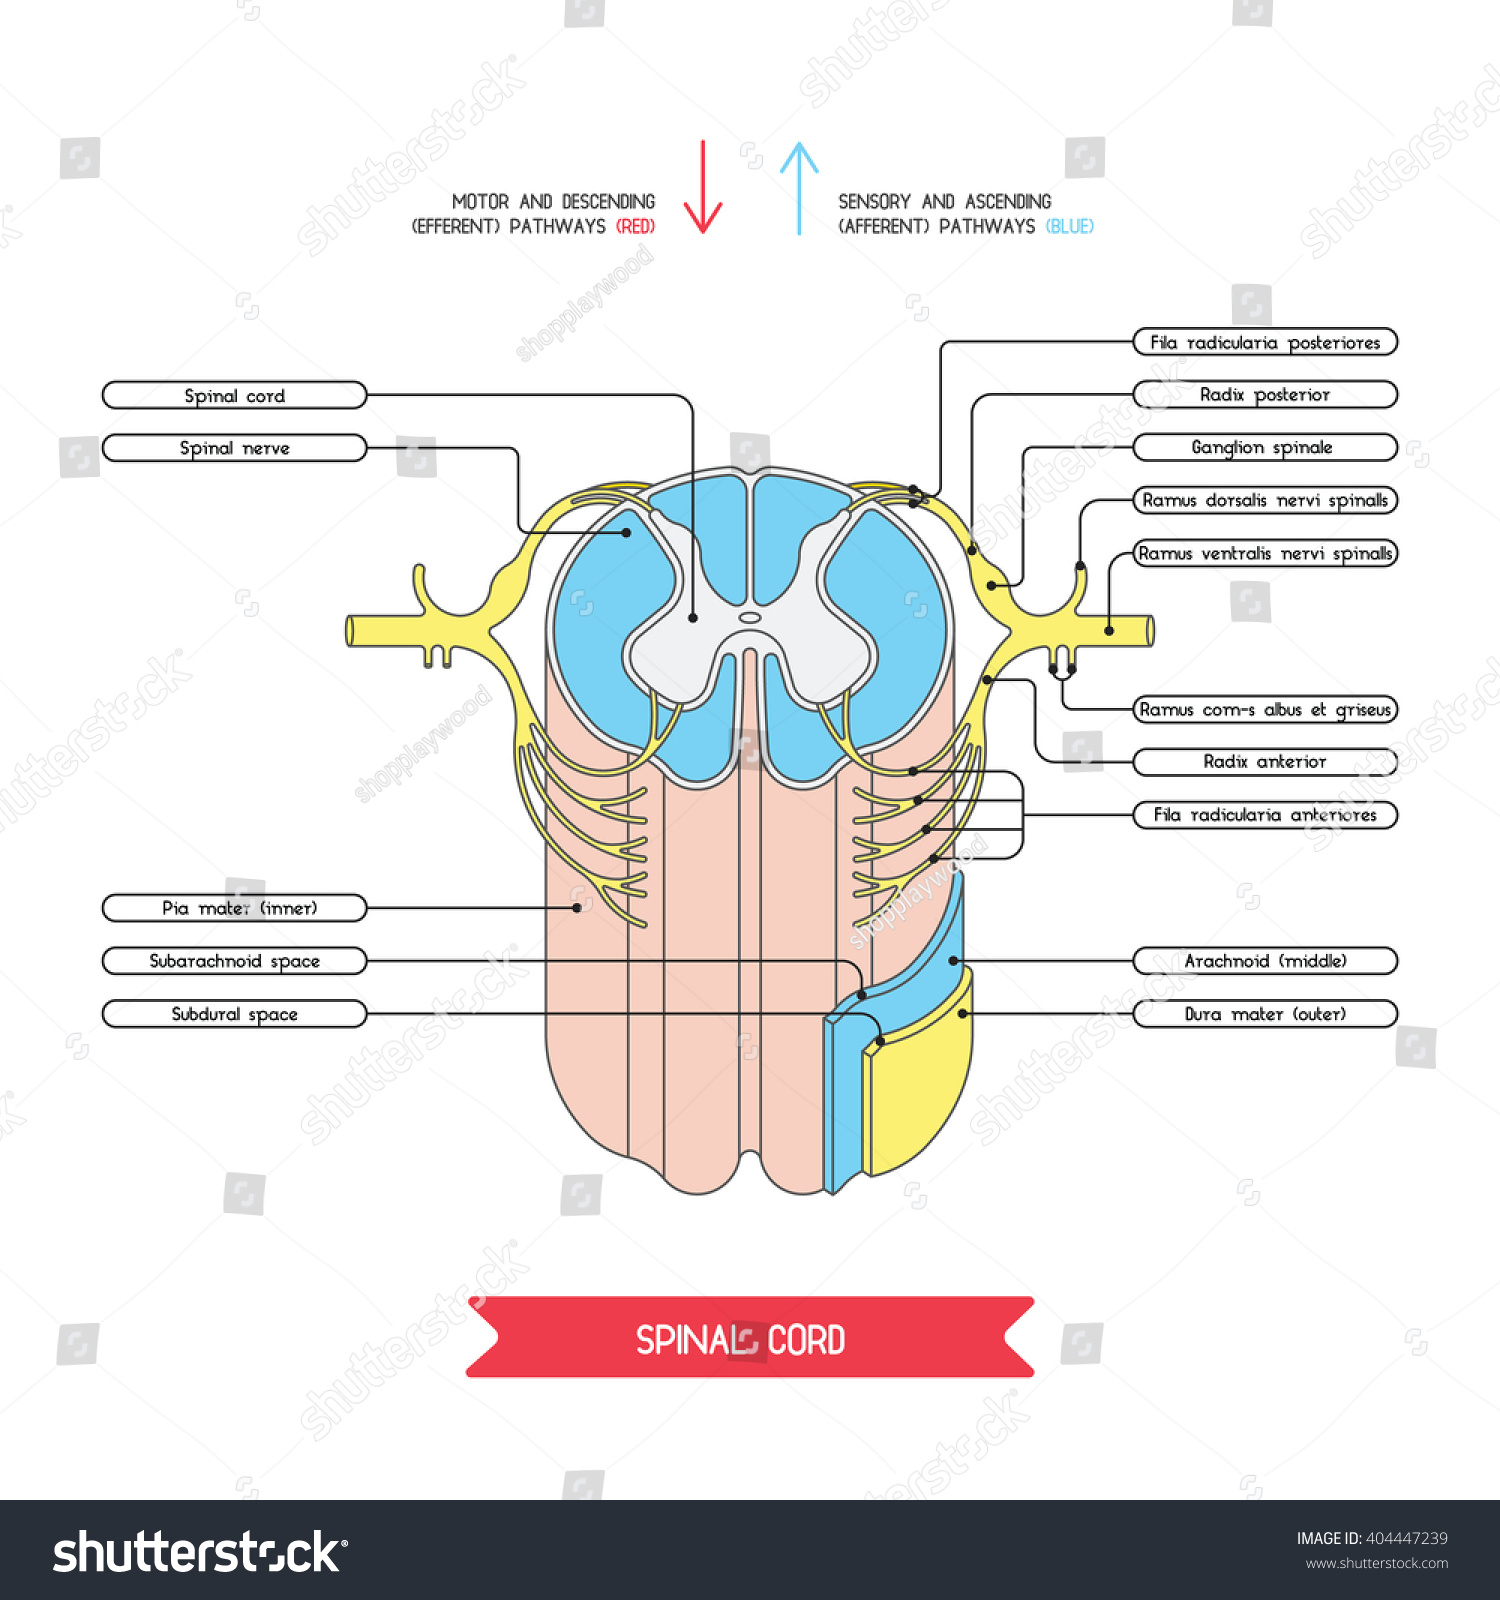 reflex arc diagram trane chiller wiring cross section spinal cord central nervous stock vector